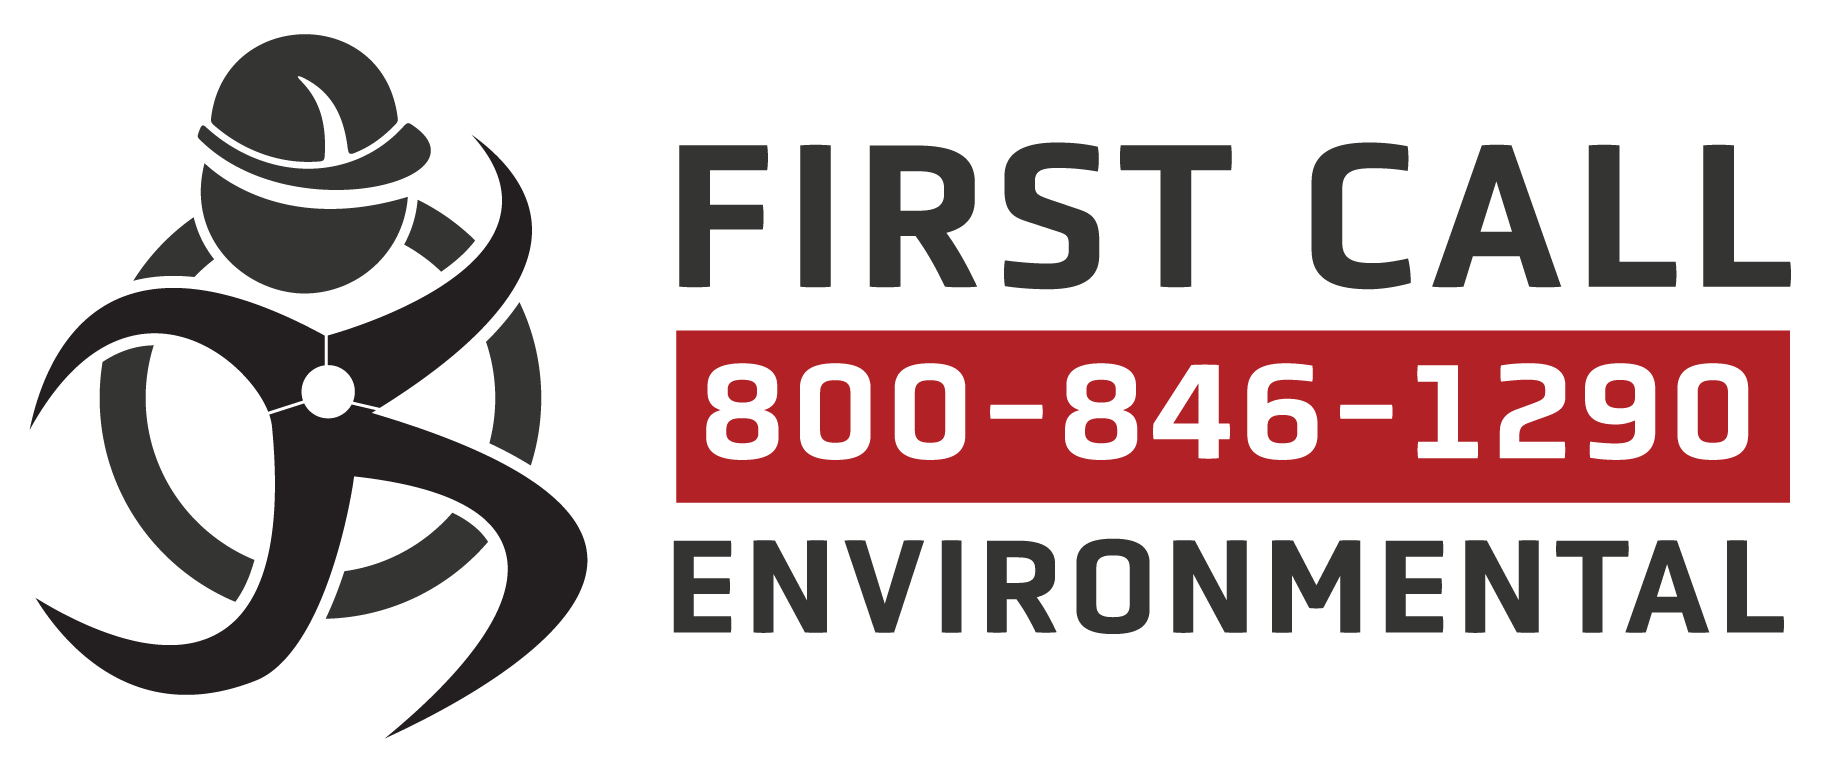 First Call Environmental